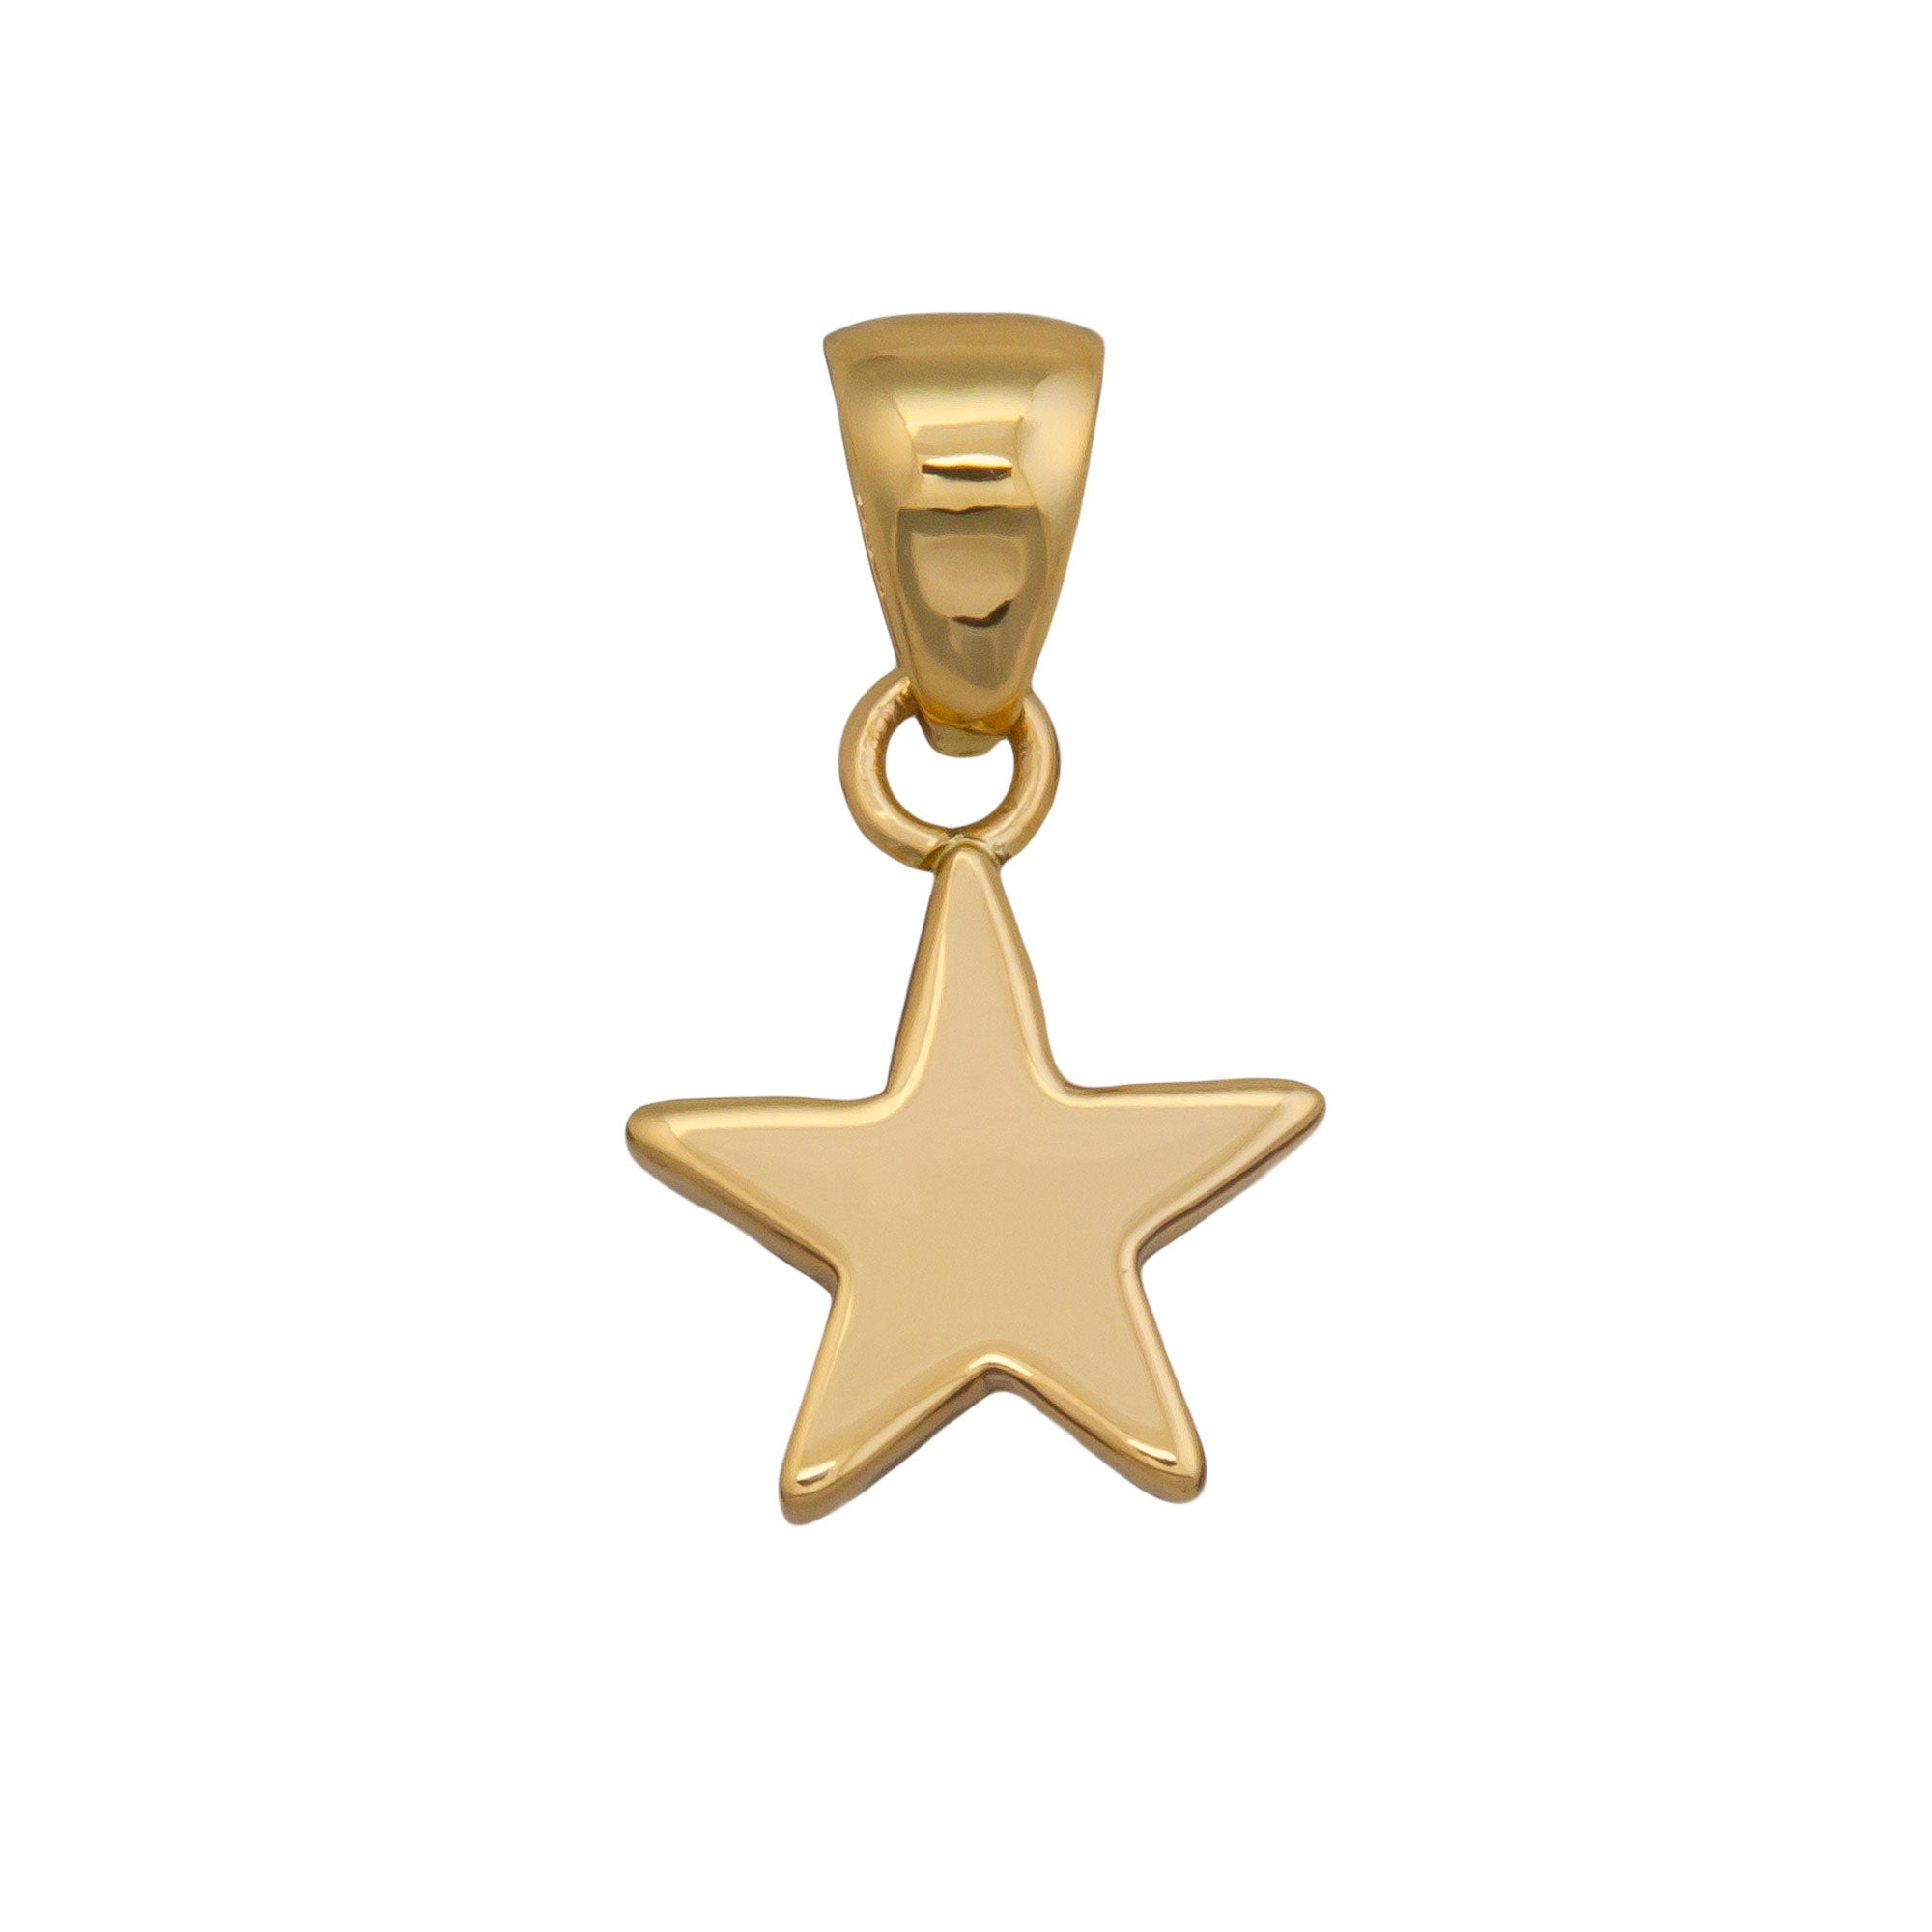 Alchemia Mini Star Pendant